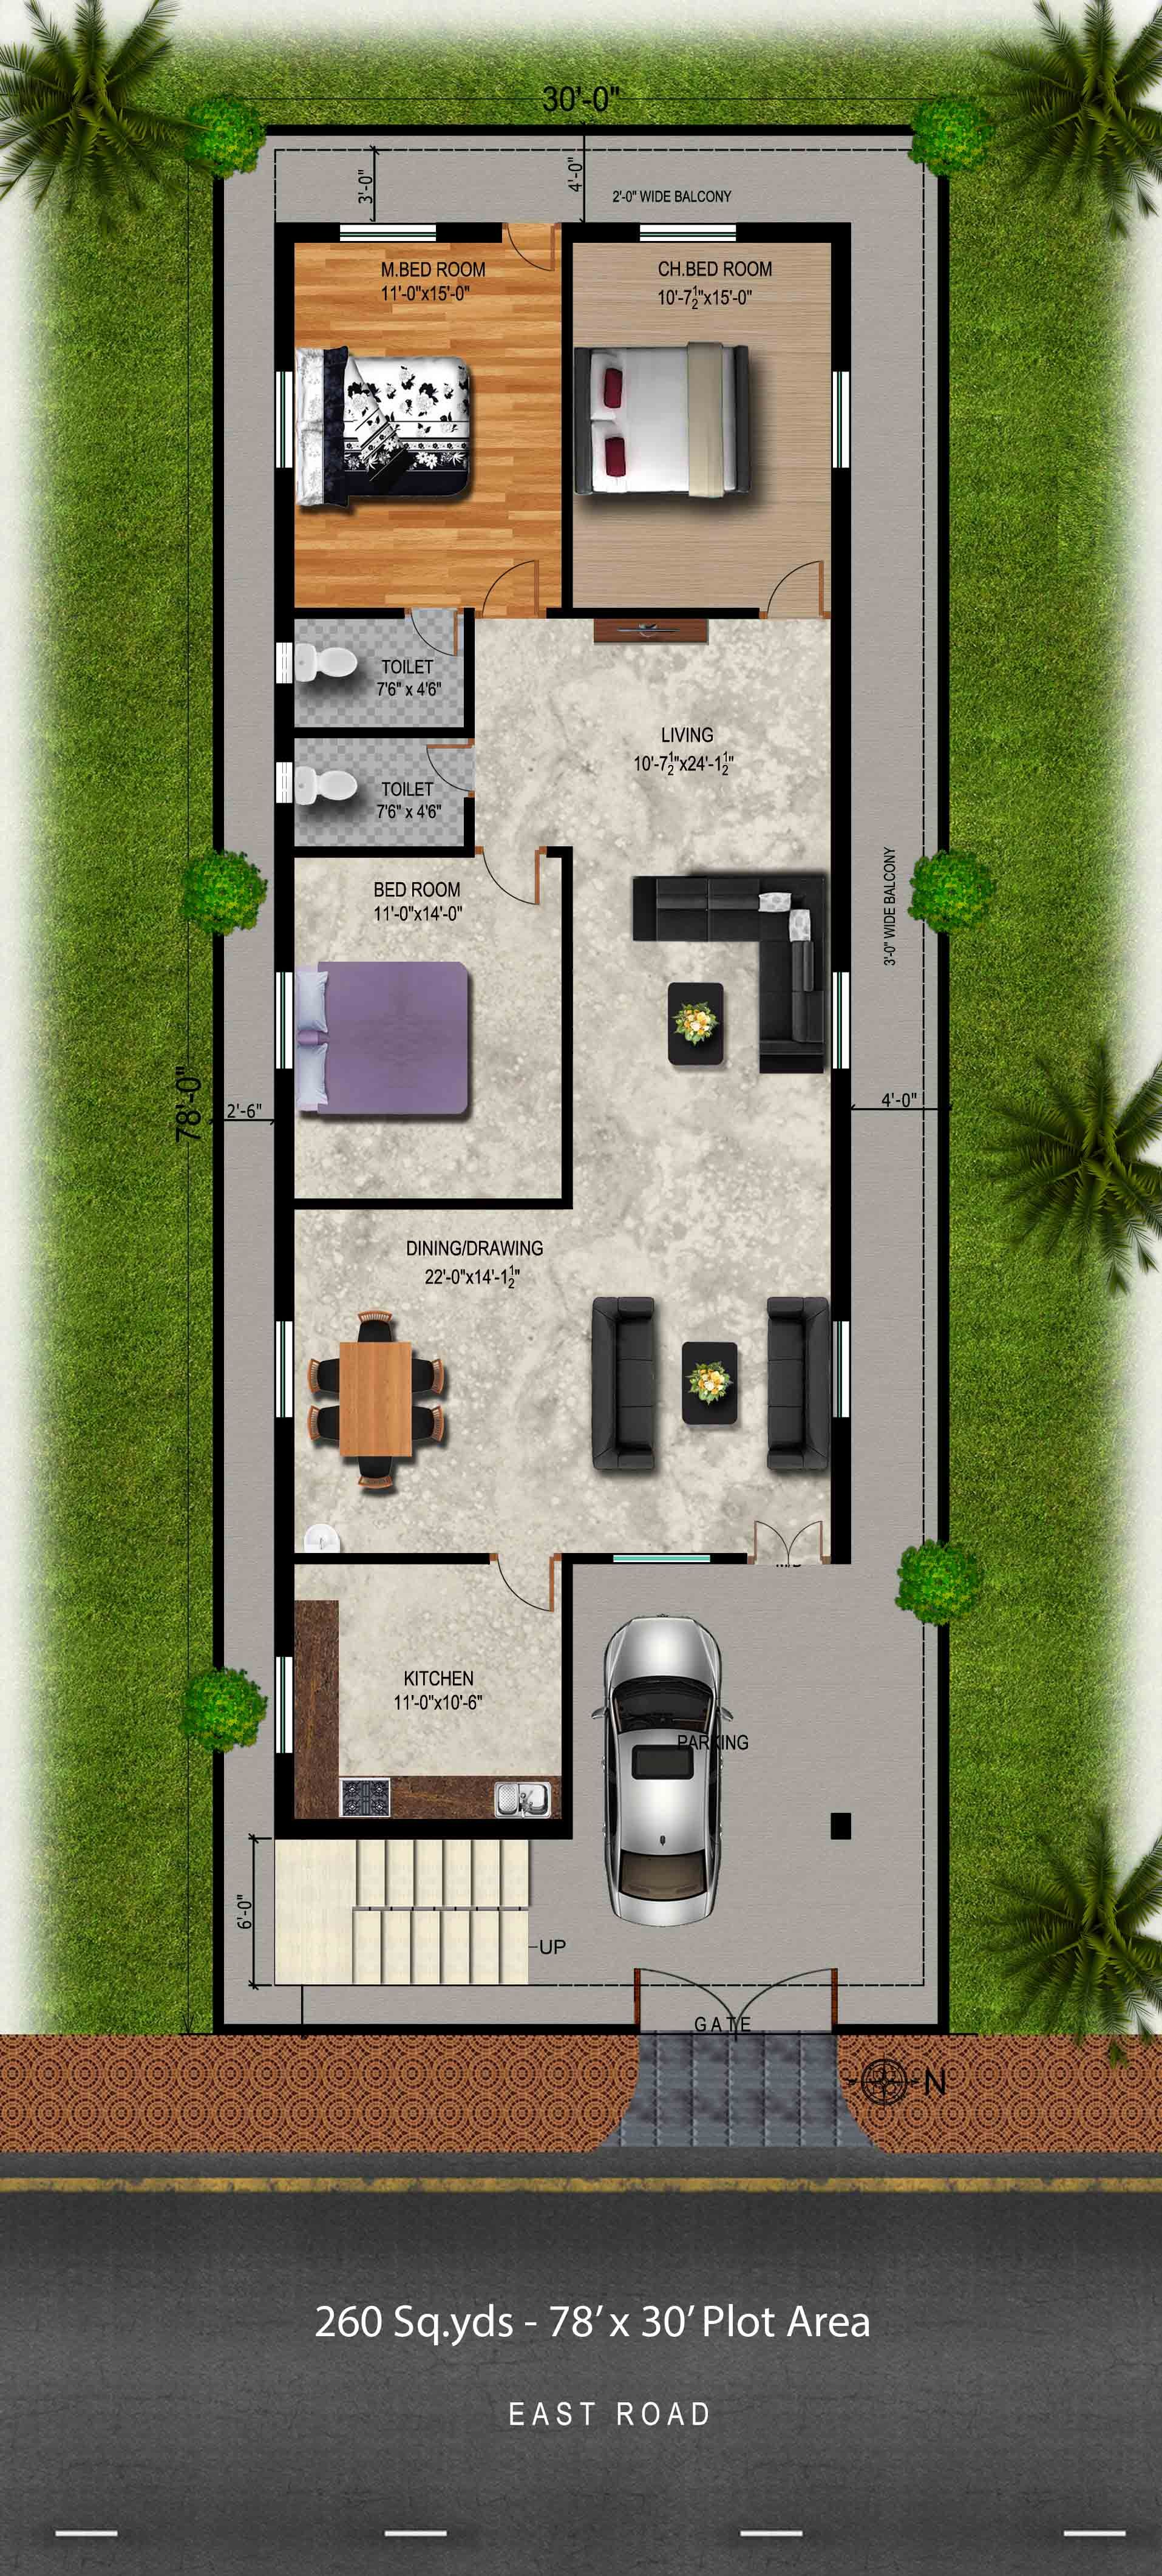 House design for 100 gaj - Download Free Plans 260 Sq Yds 30x78 Sq Ft East Face House 3bhk Elevation View